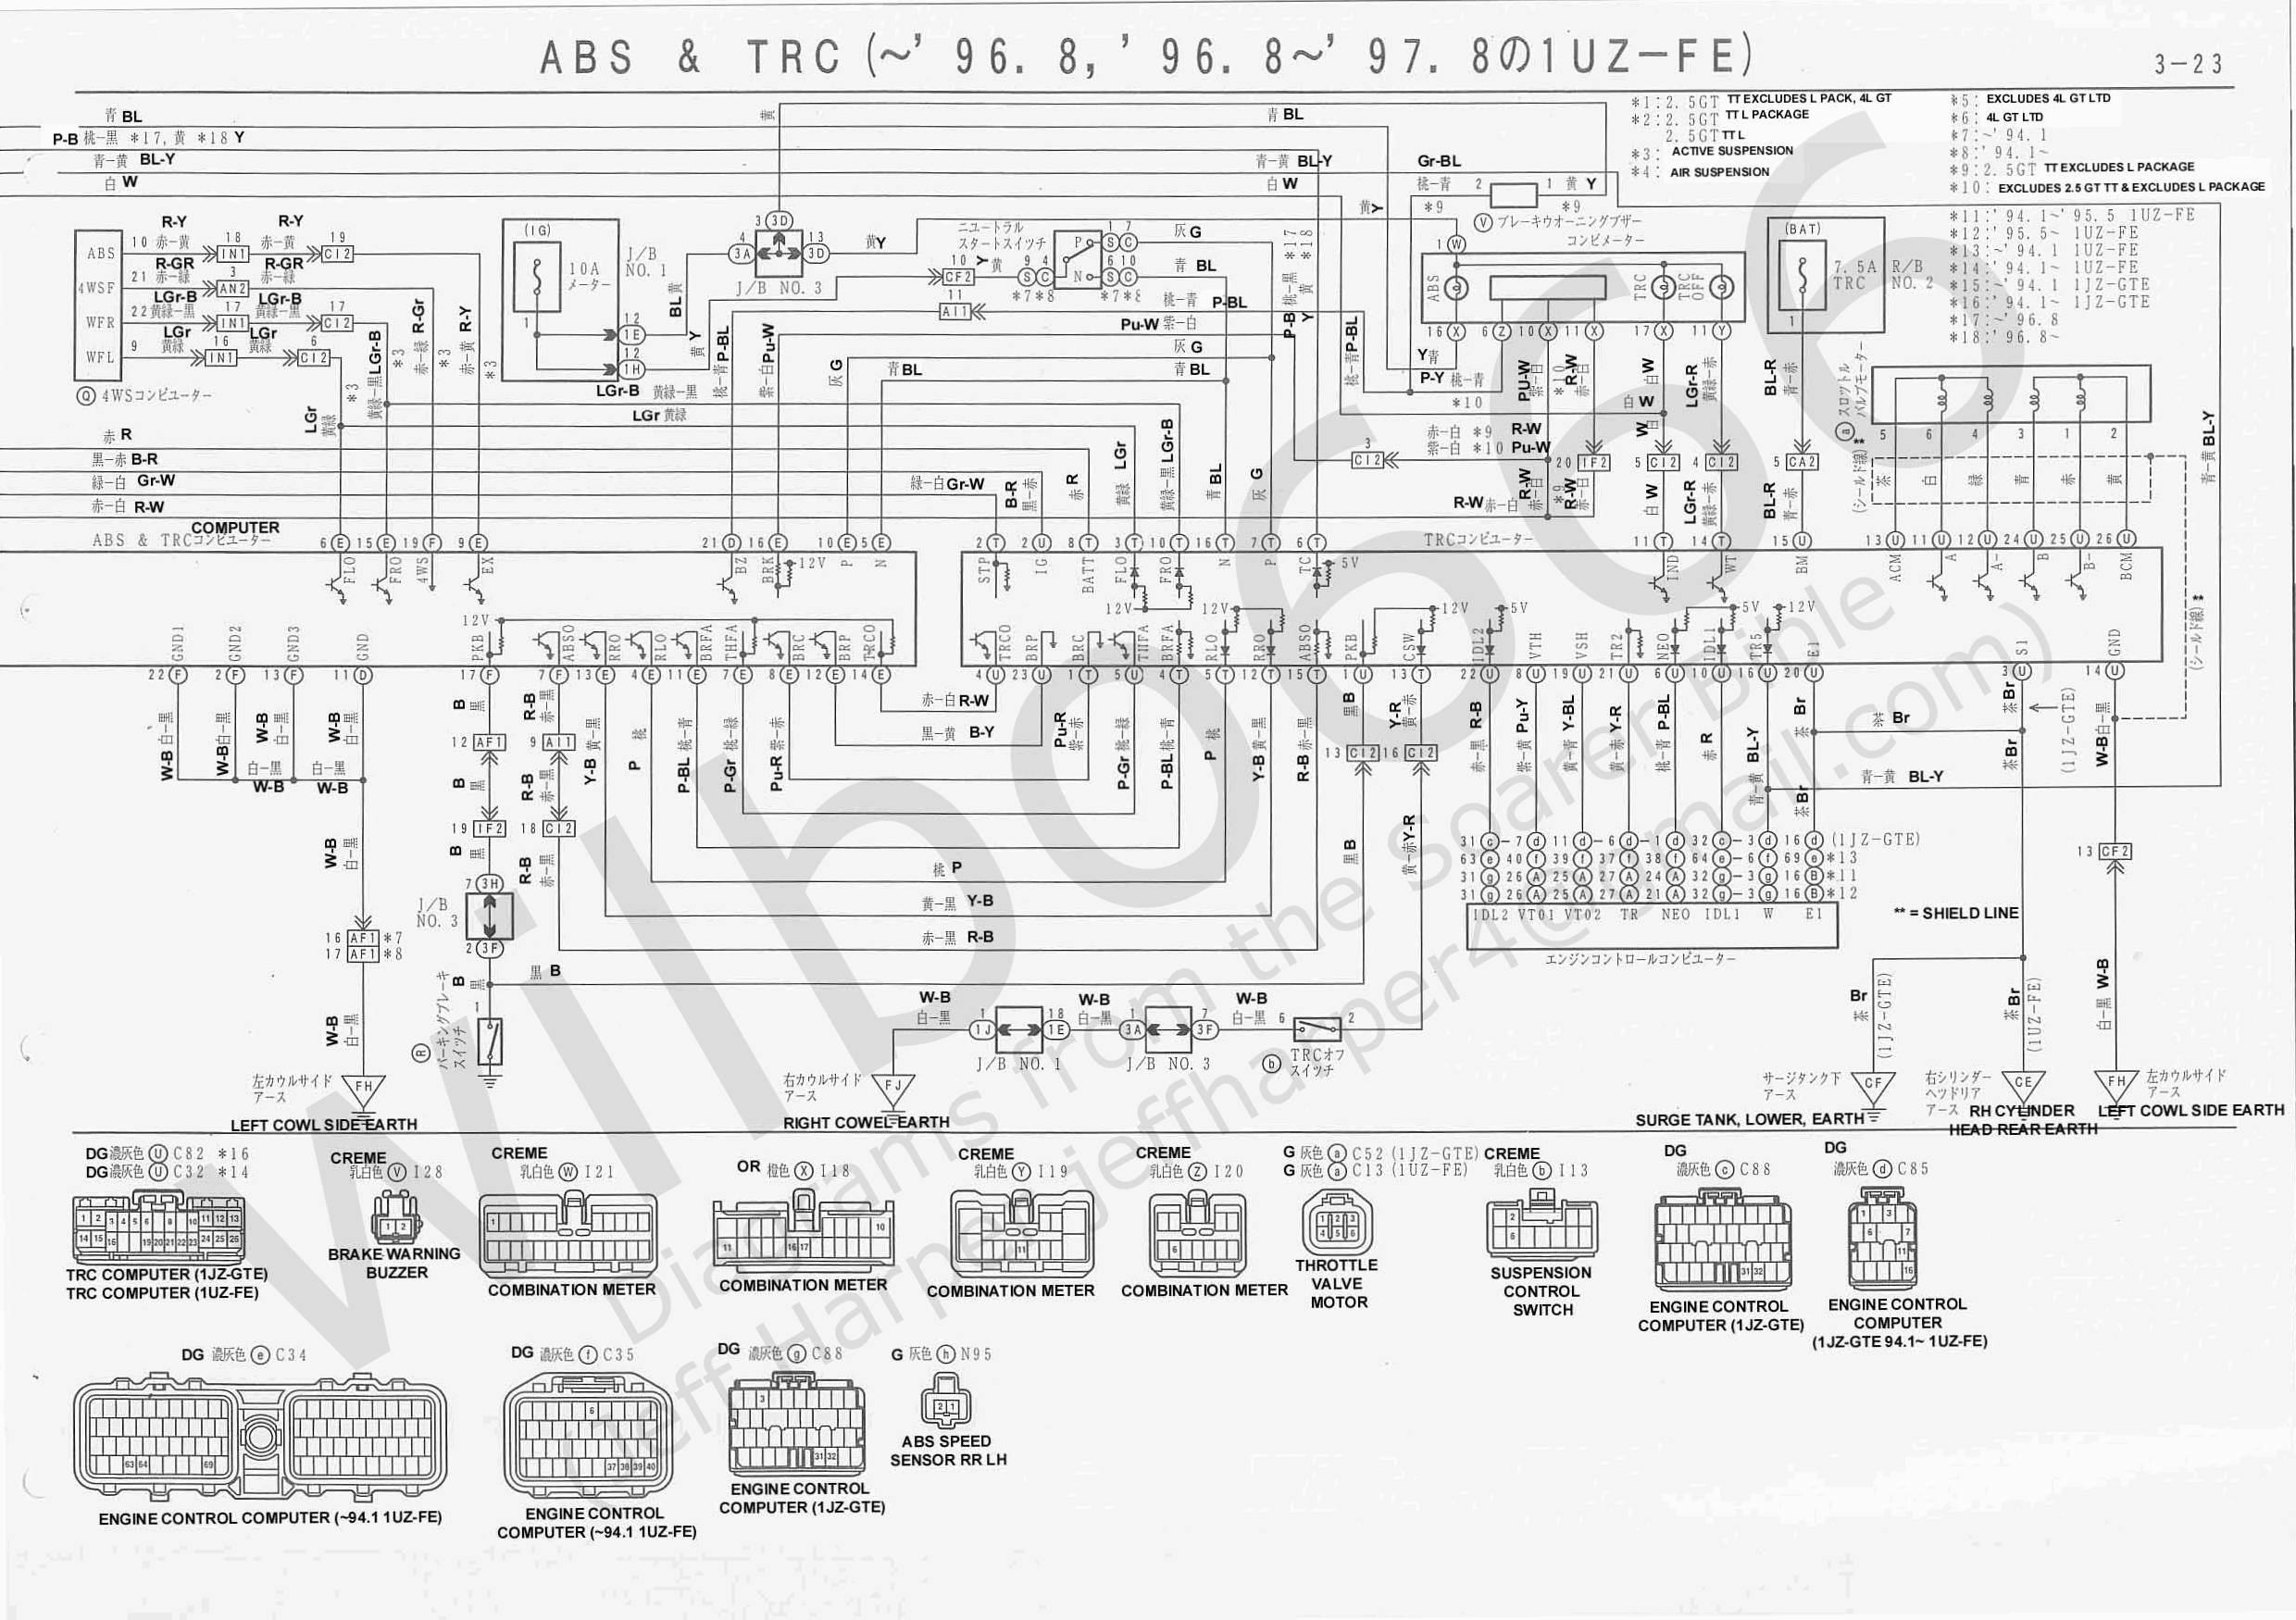 xZZ3x Electrical Wiring Diagram 6737105 3 23?resize=665%2C469 100 [ 1jz ge auto help mechanical electrical pakwheels forums  at fashall.co